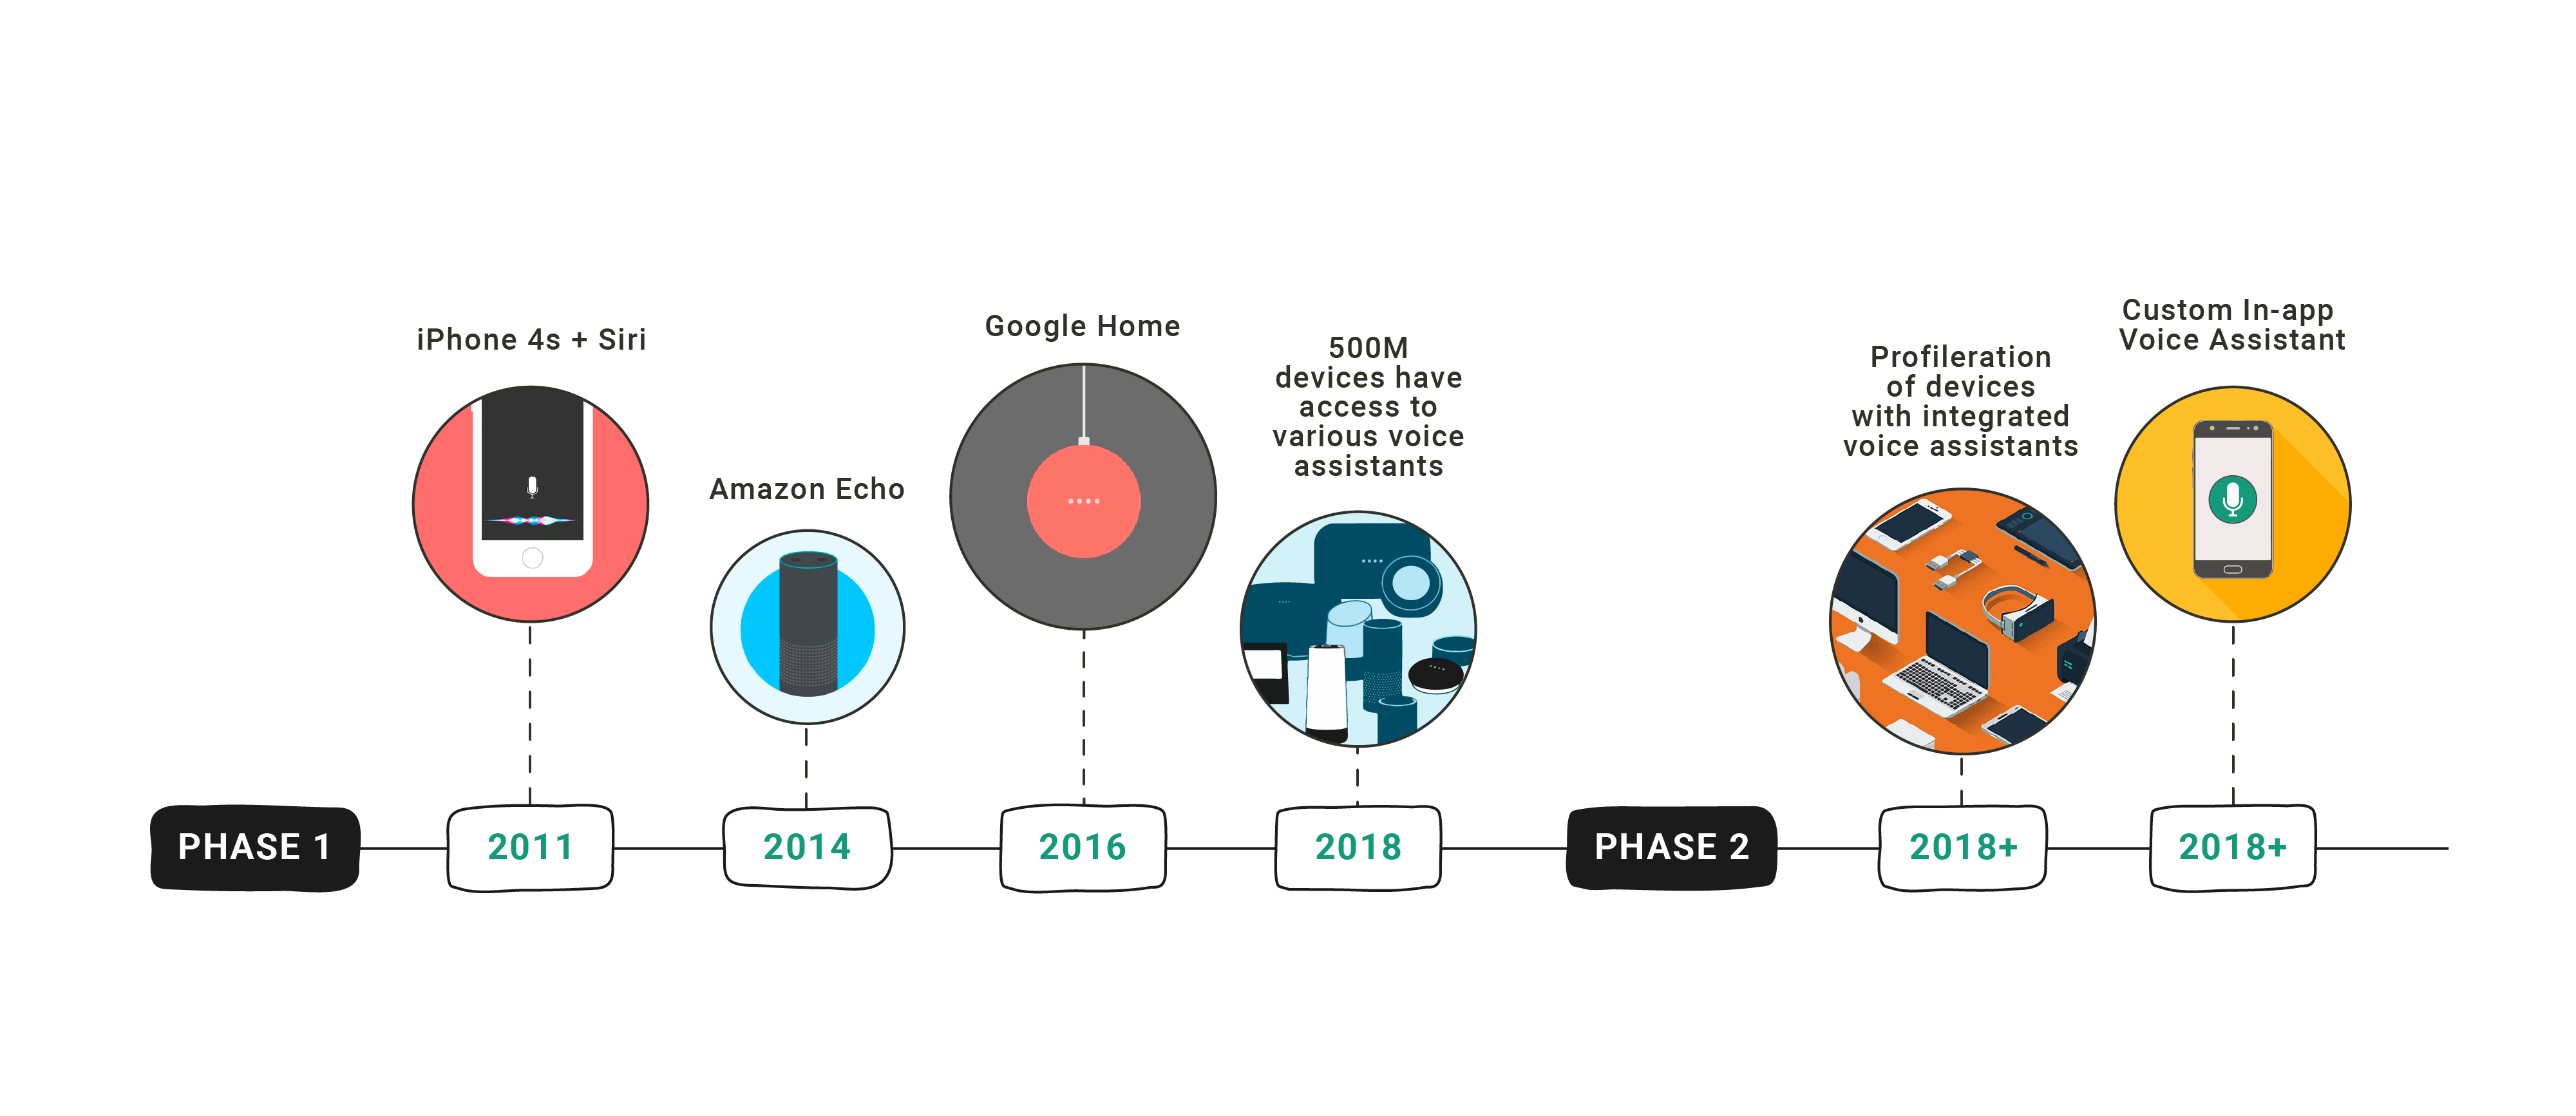 Phases in Voice Assistant Journey